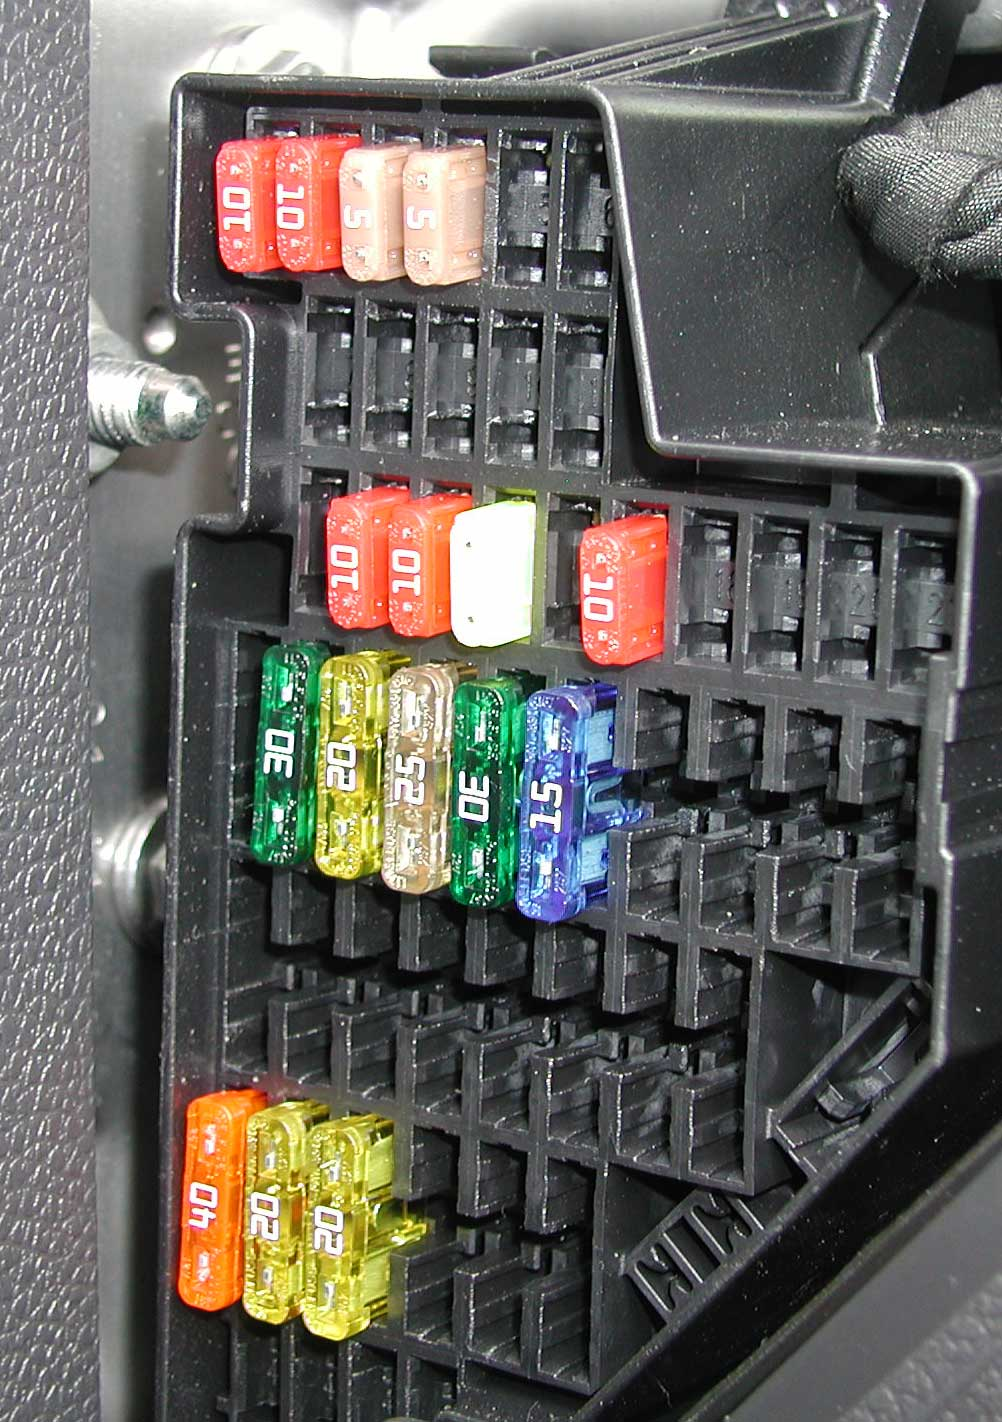 fuses2 2011 golf tdi fuse box (picture please!!!) tdiclub forums vw golf 4 fuse box diagram at suagrazia.org